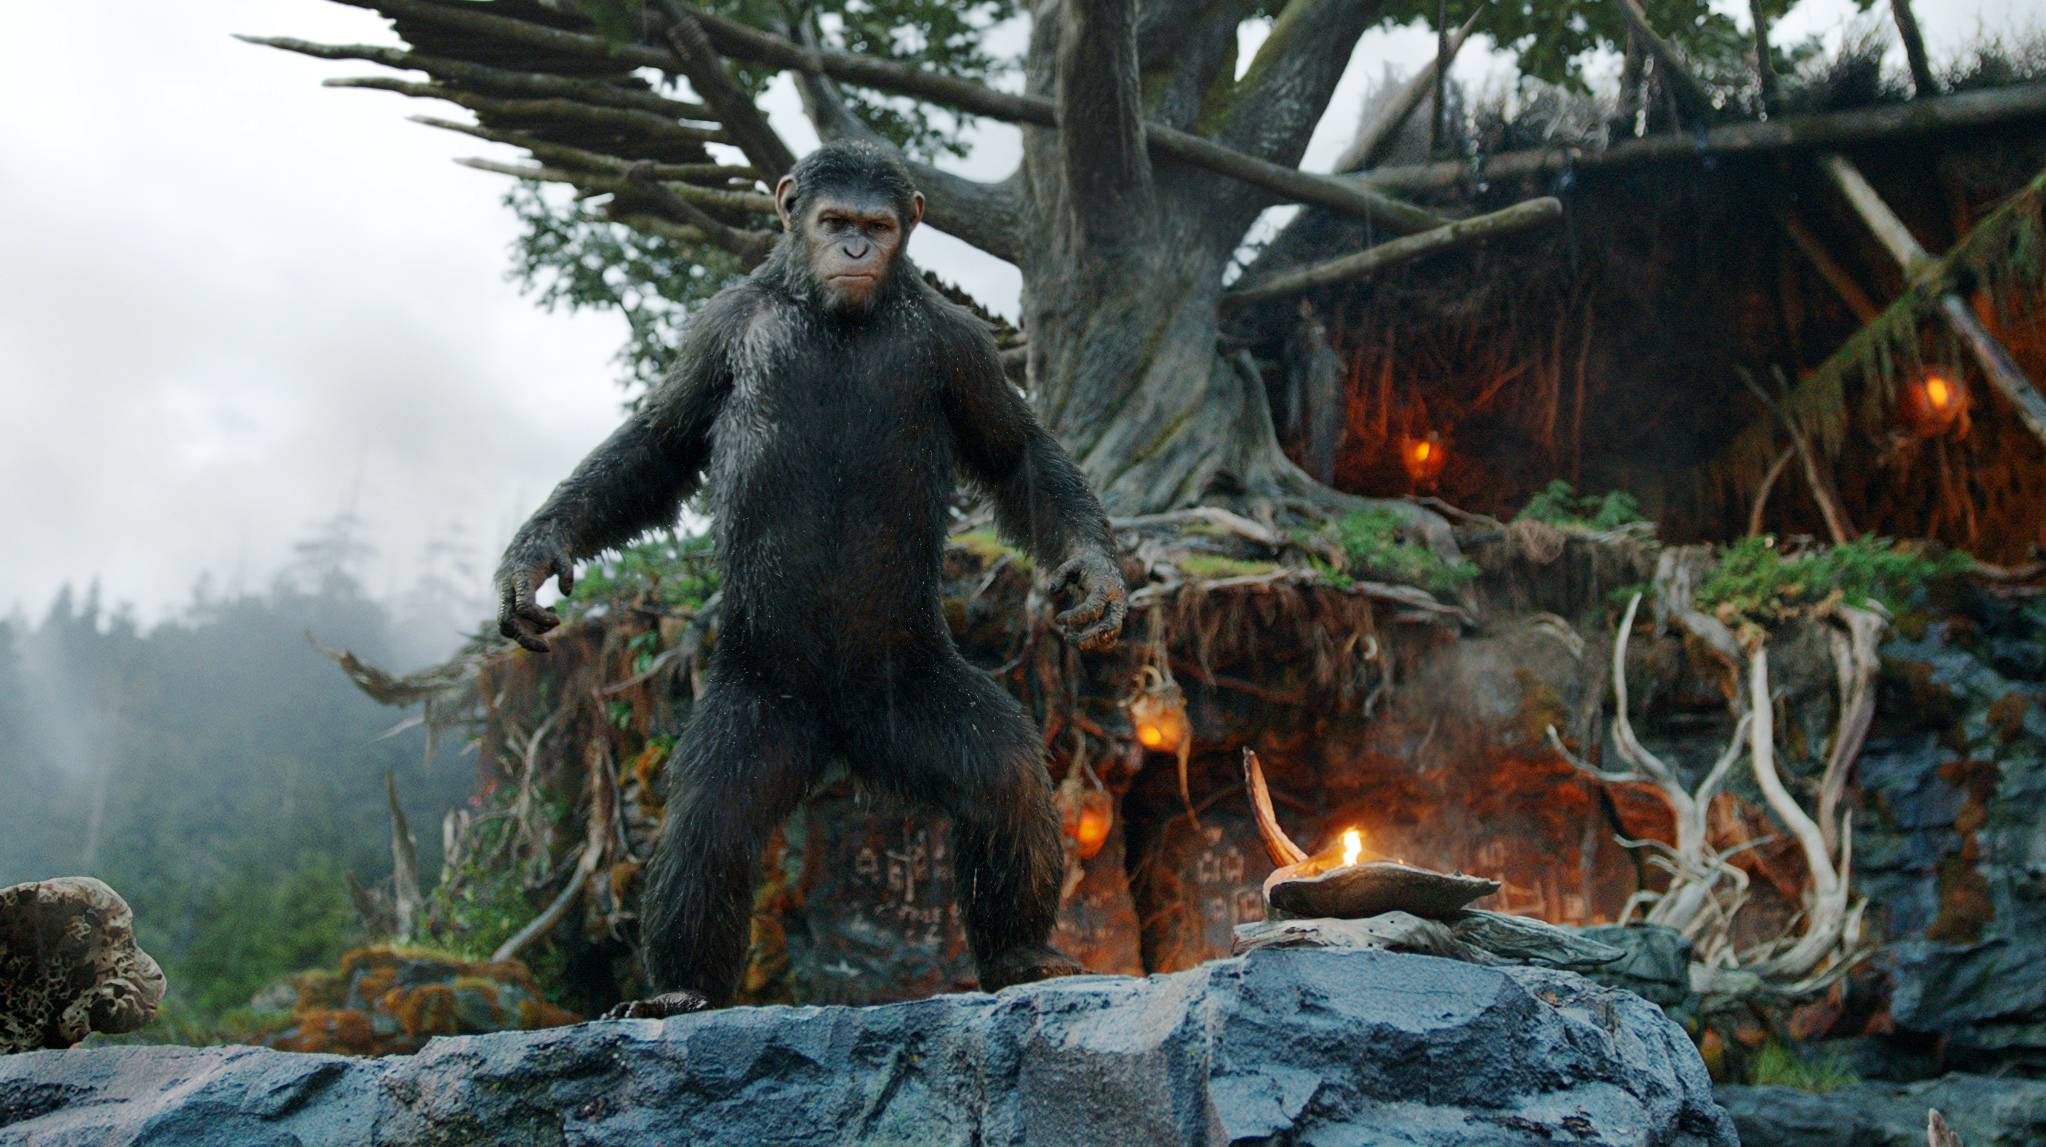 """Dawn of the Planet of the Apes"" brought in $73 million its opening weekend — one of the best debuts this summer, according to industry estimates."